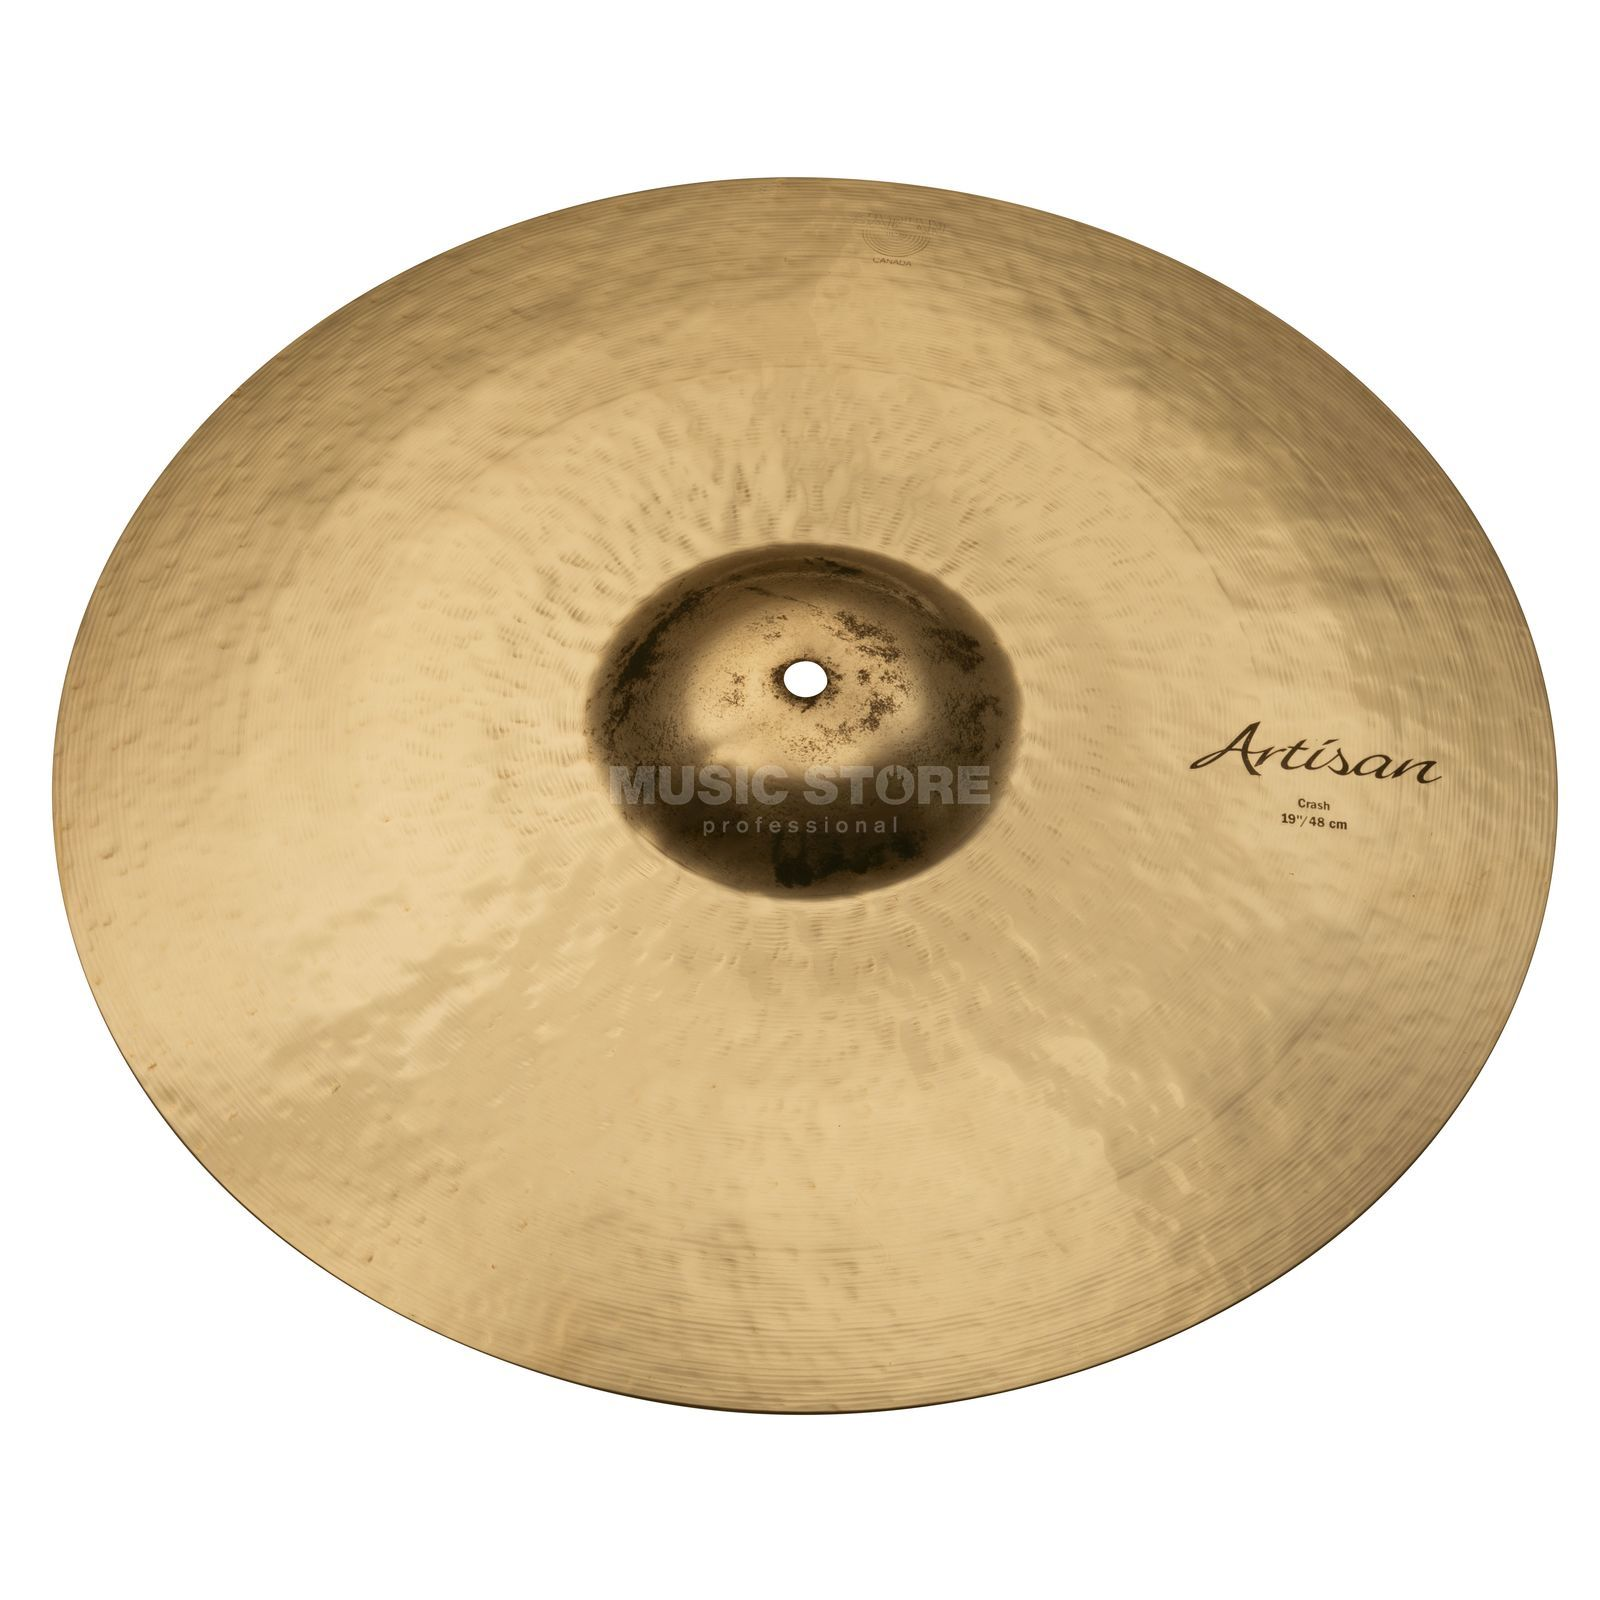 "Sabian Artisan Thin Crash 19"", Brilliant Finish Produktbillede"